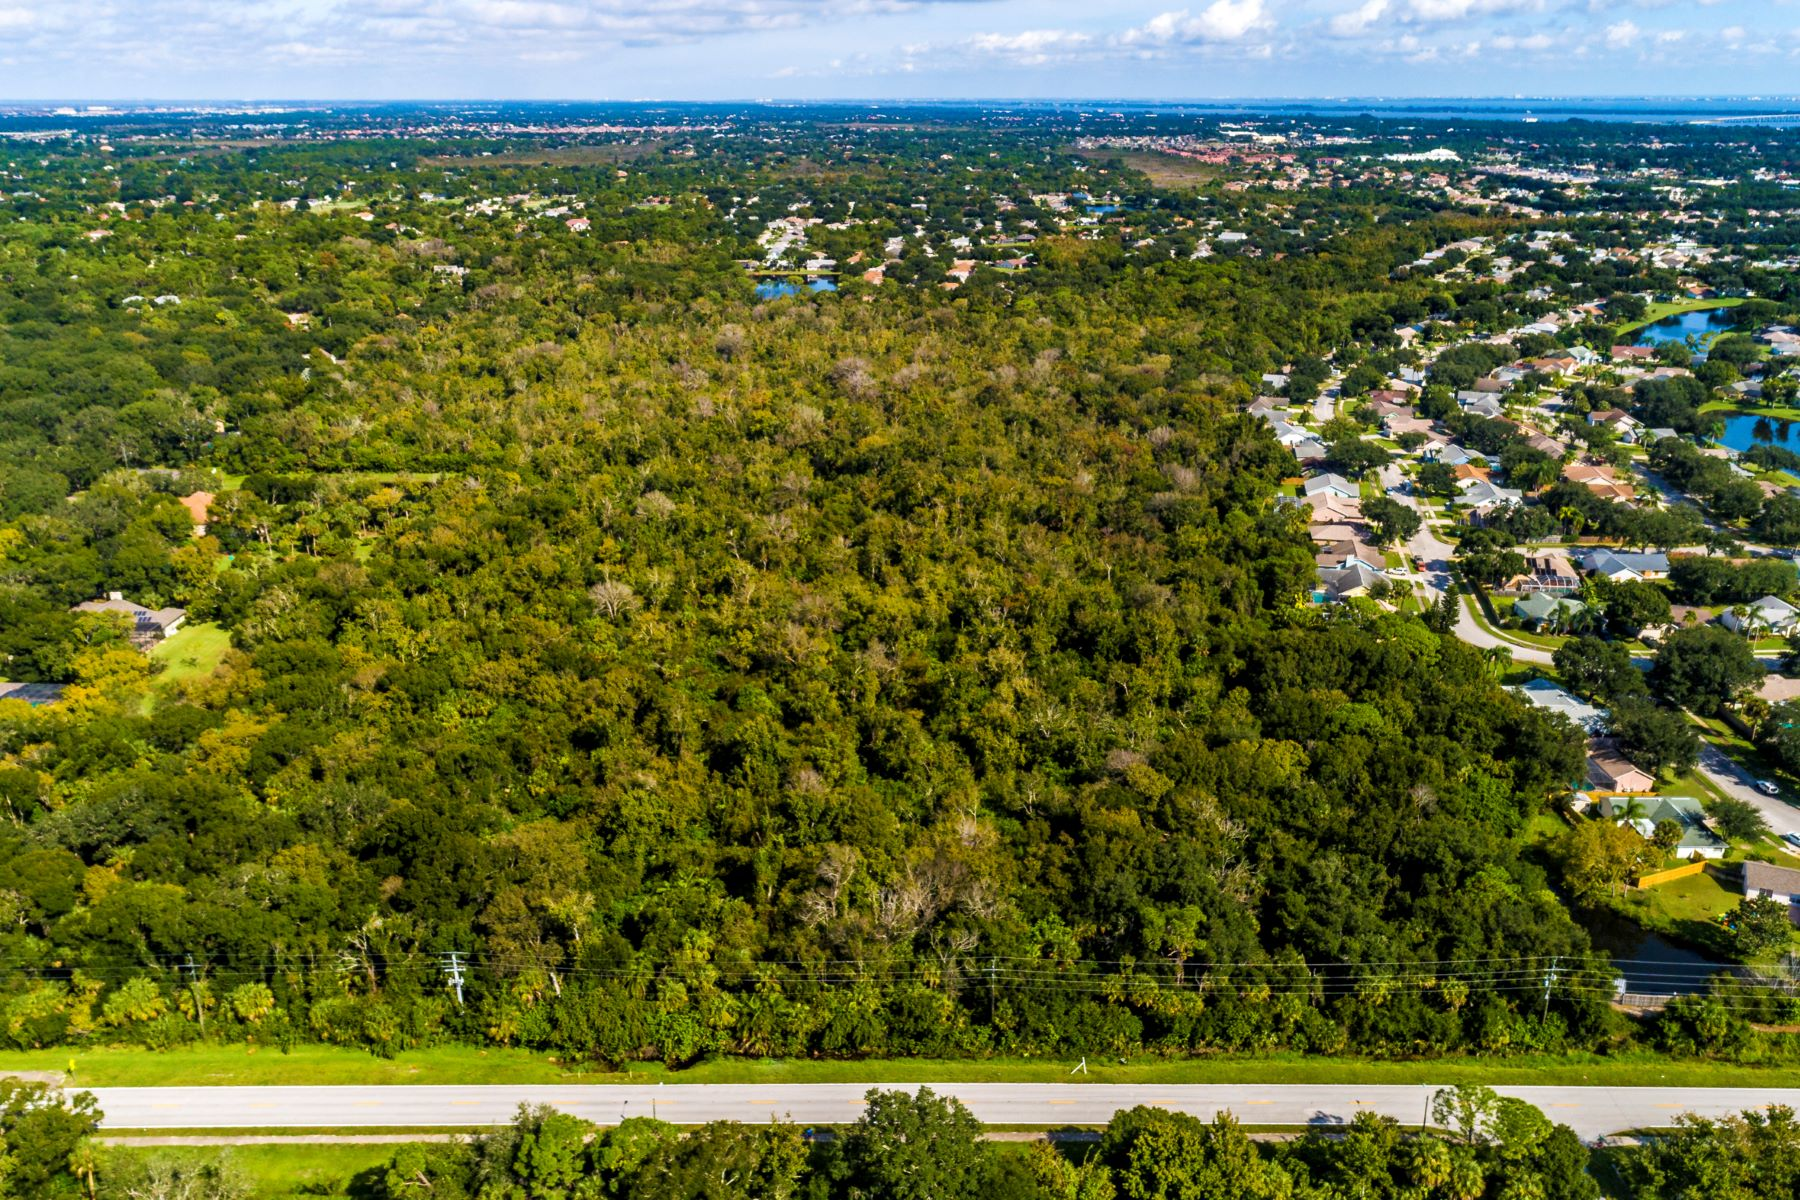 Land for Sale at Thirty Nine Acres in Desireable Location in Melbourne 0000 Parkway Drive Melbourne, Florida 32934 United States